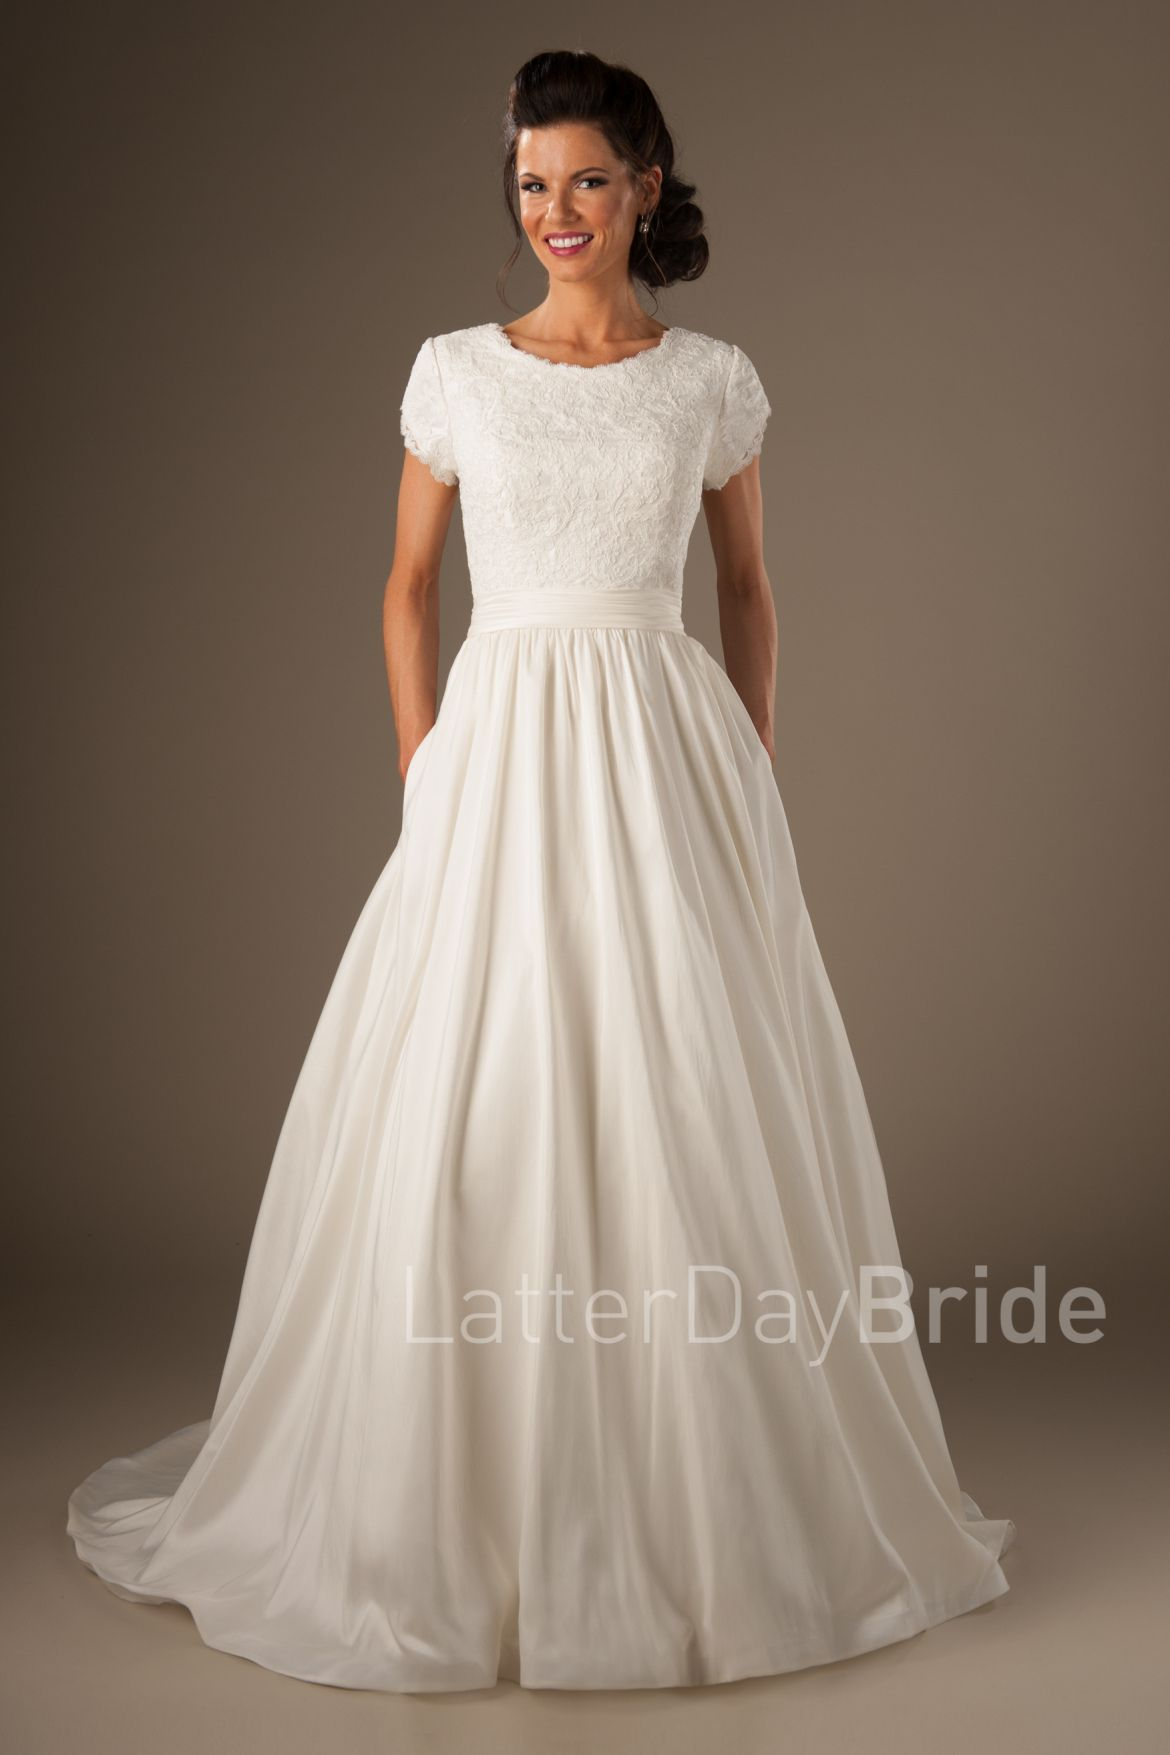 Conservative wedding dress   Conservative Wedding Dresses  Dress for Country Wedding Guest